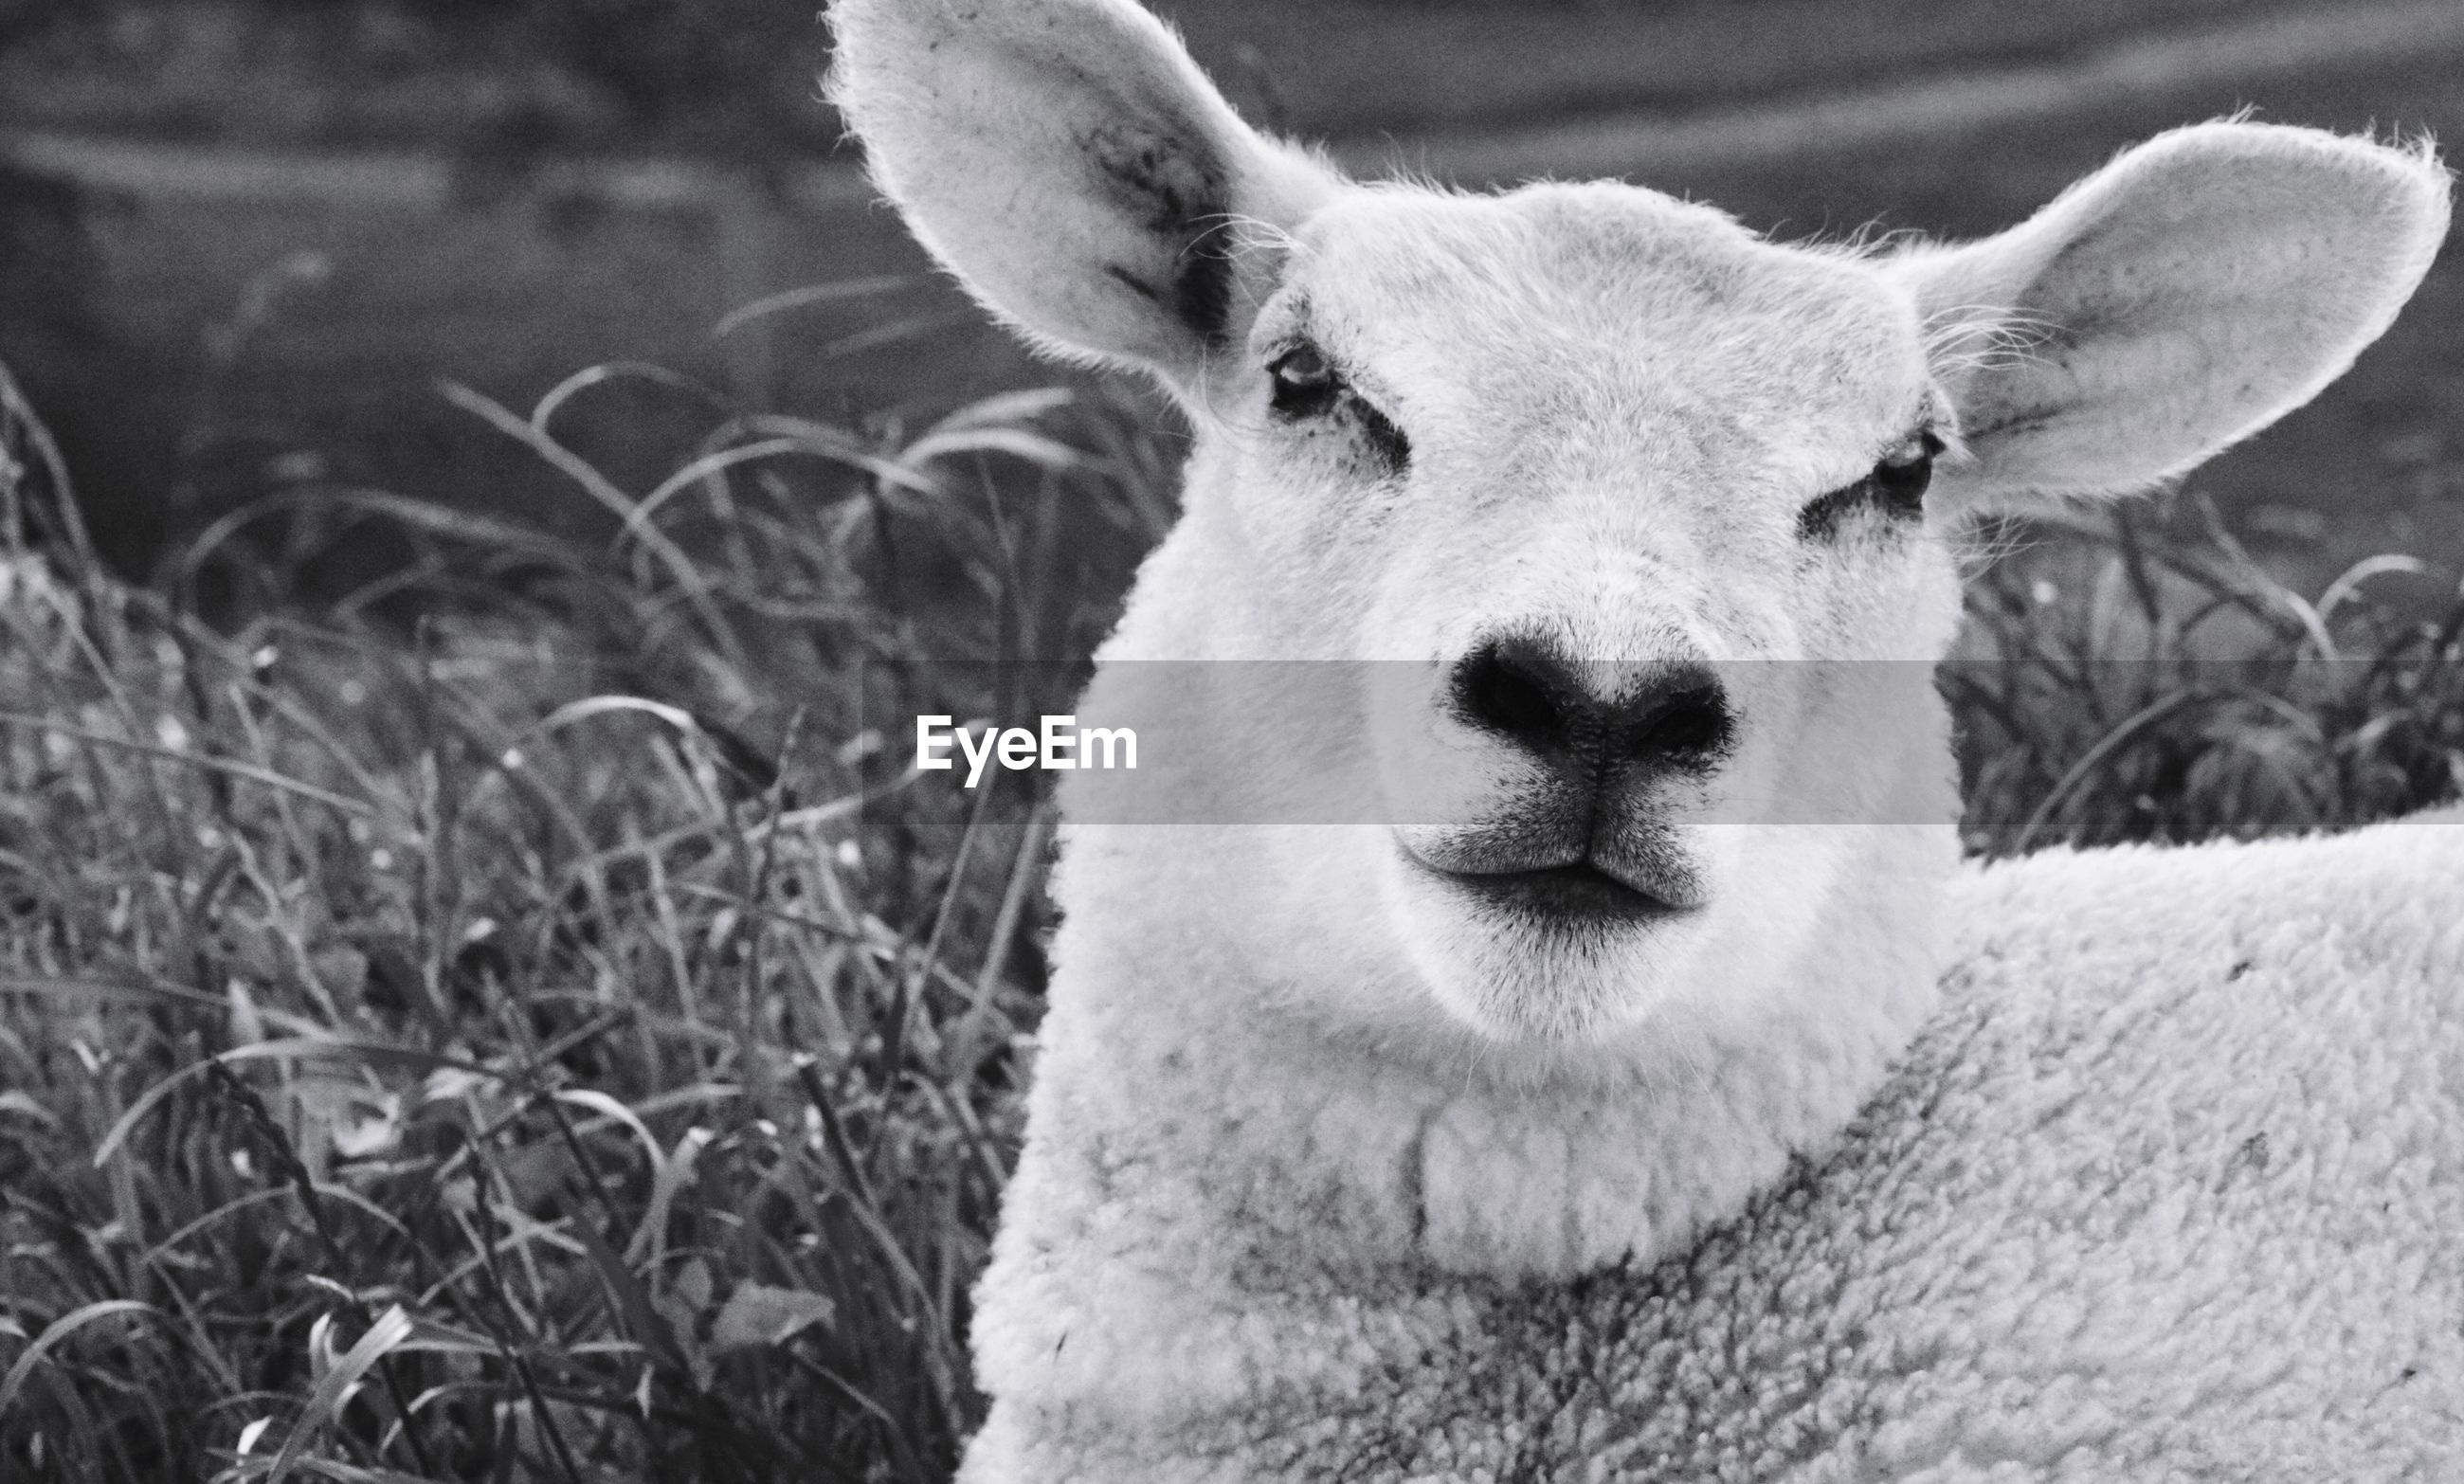 CLOSE-UP PORTRAIT OF A SHEEP ON FIELD